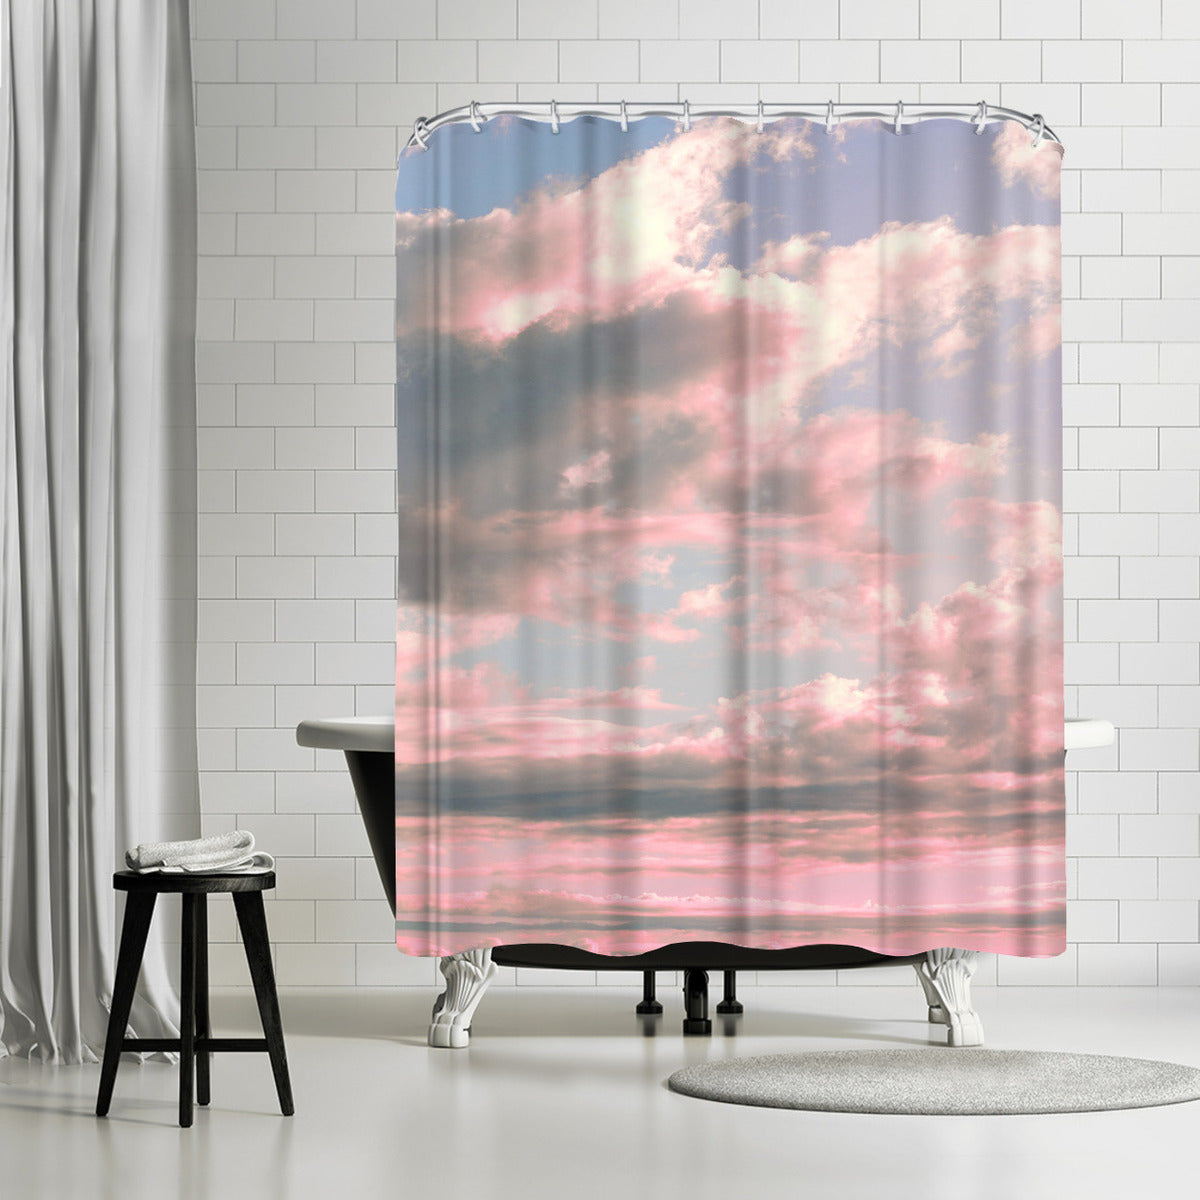 Delicate Sky by Emanuela Carratoni Shower Curtain - Shower Curtain - Americanflat